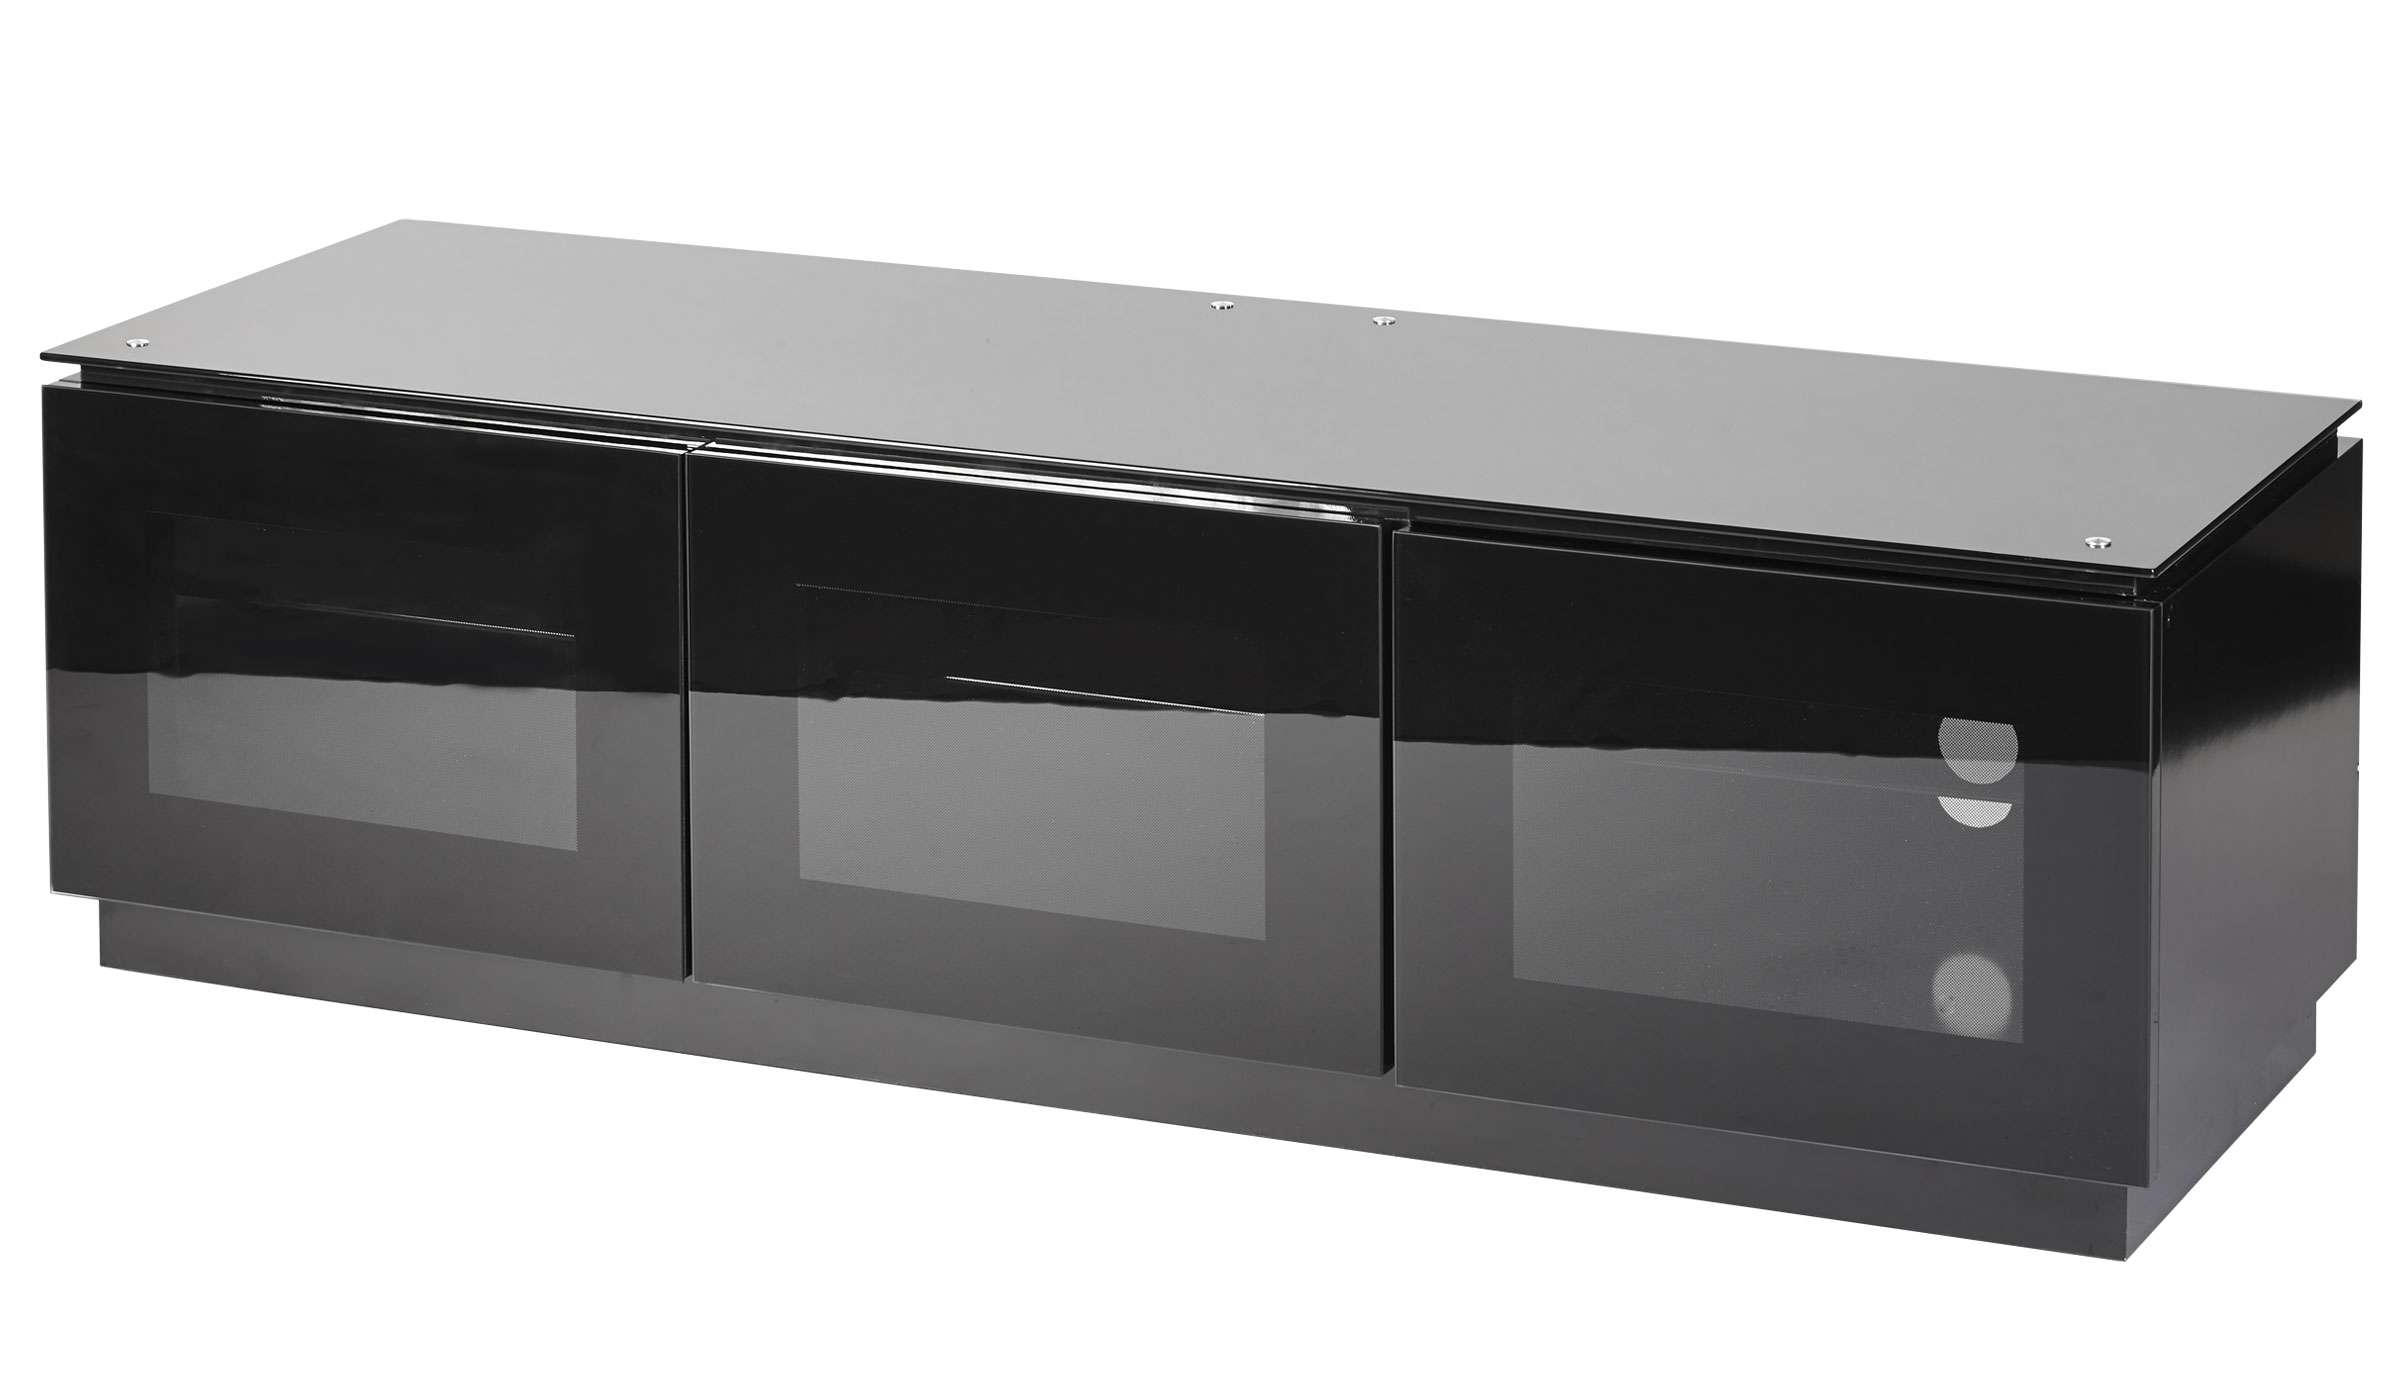 Black Gloss Tv Unit Up To 65 Inch Flat Tv | Mmt D1500 With Regard To Black Glass Tv Cabinets (View 9 of 20)